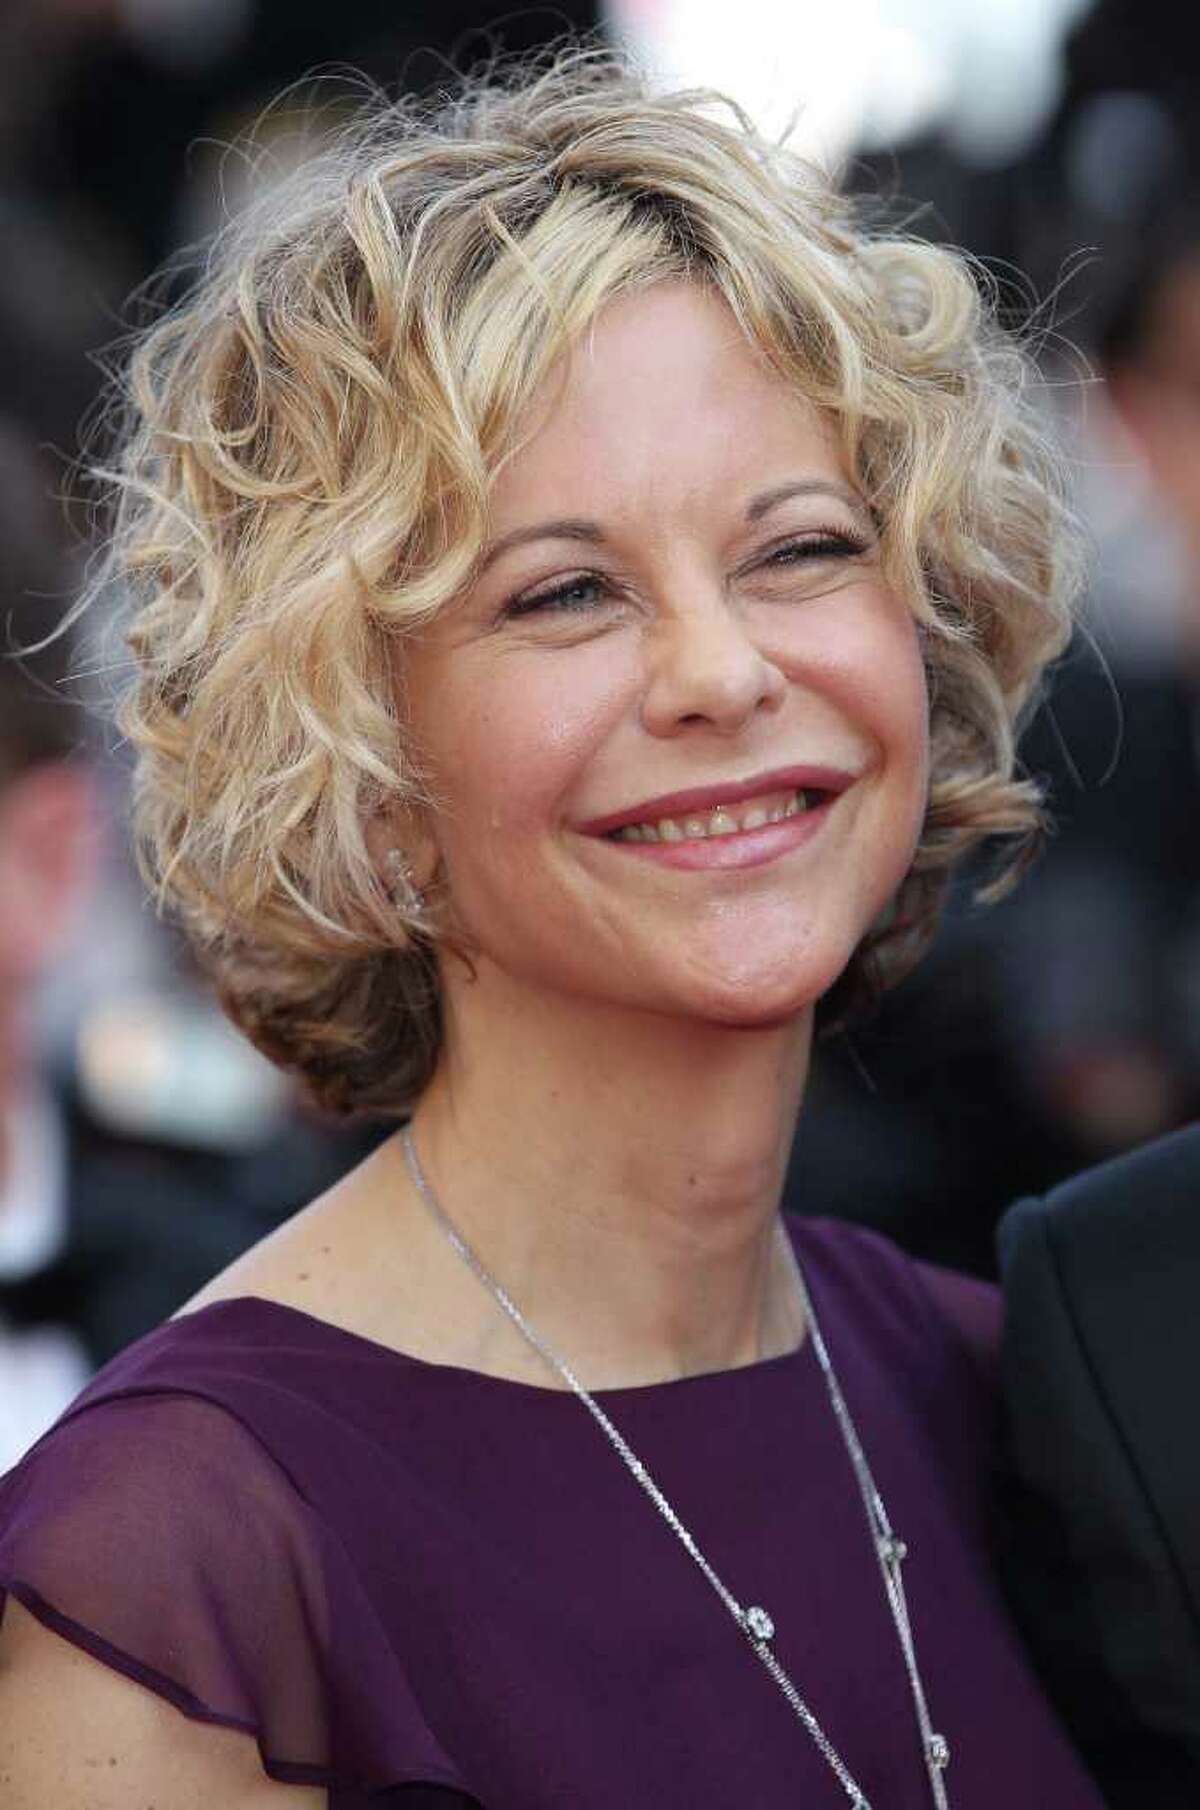 Meg Ryan Born: Fairfield Actress most famous for her roles in romantic comedy films such as When Harry Met Sally... and Sleepless in Seattle